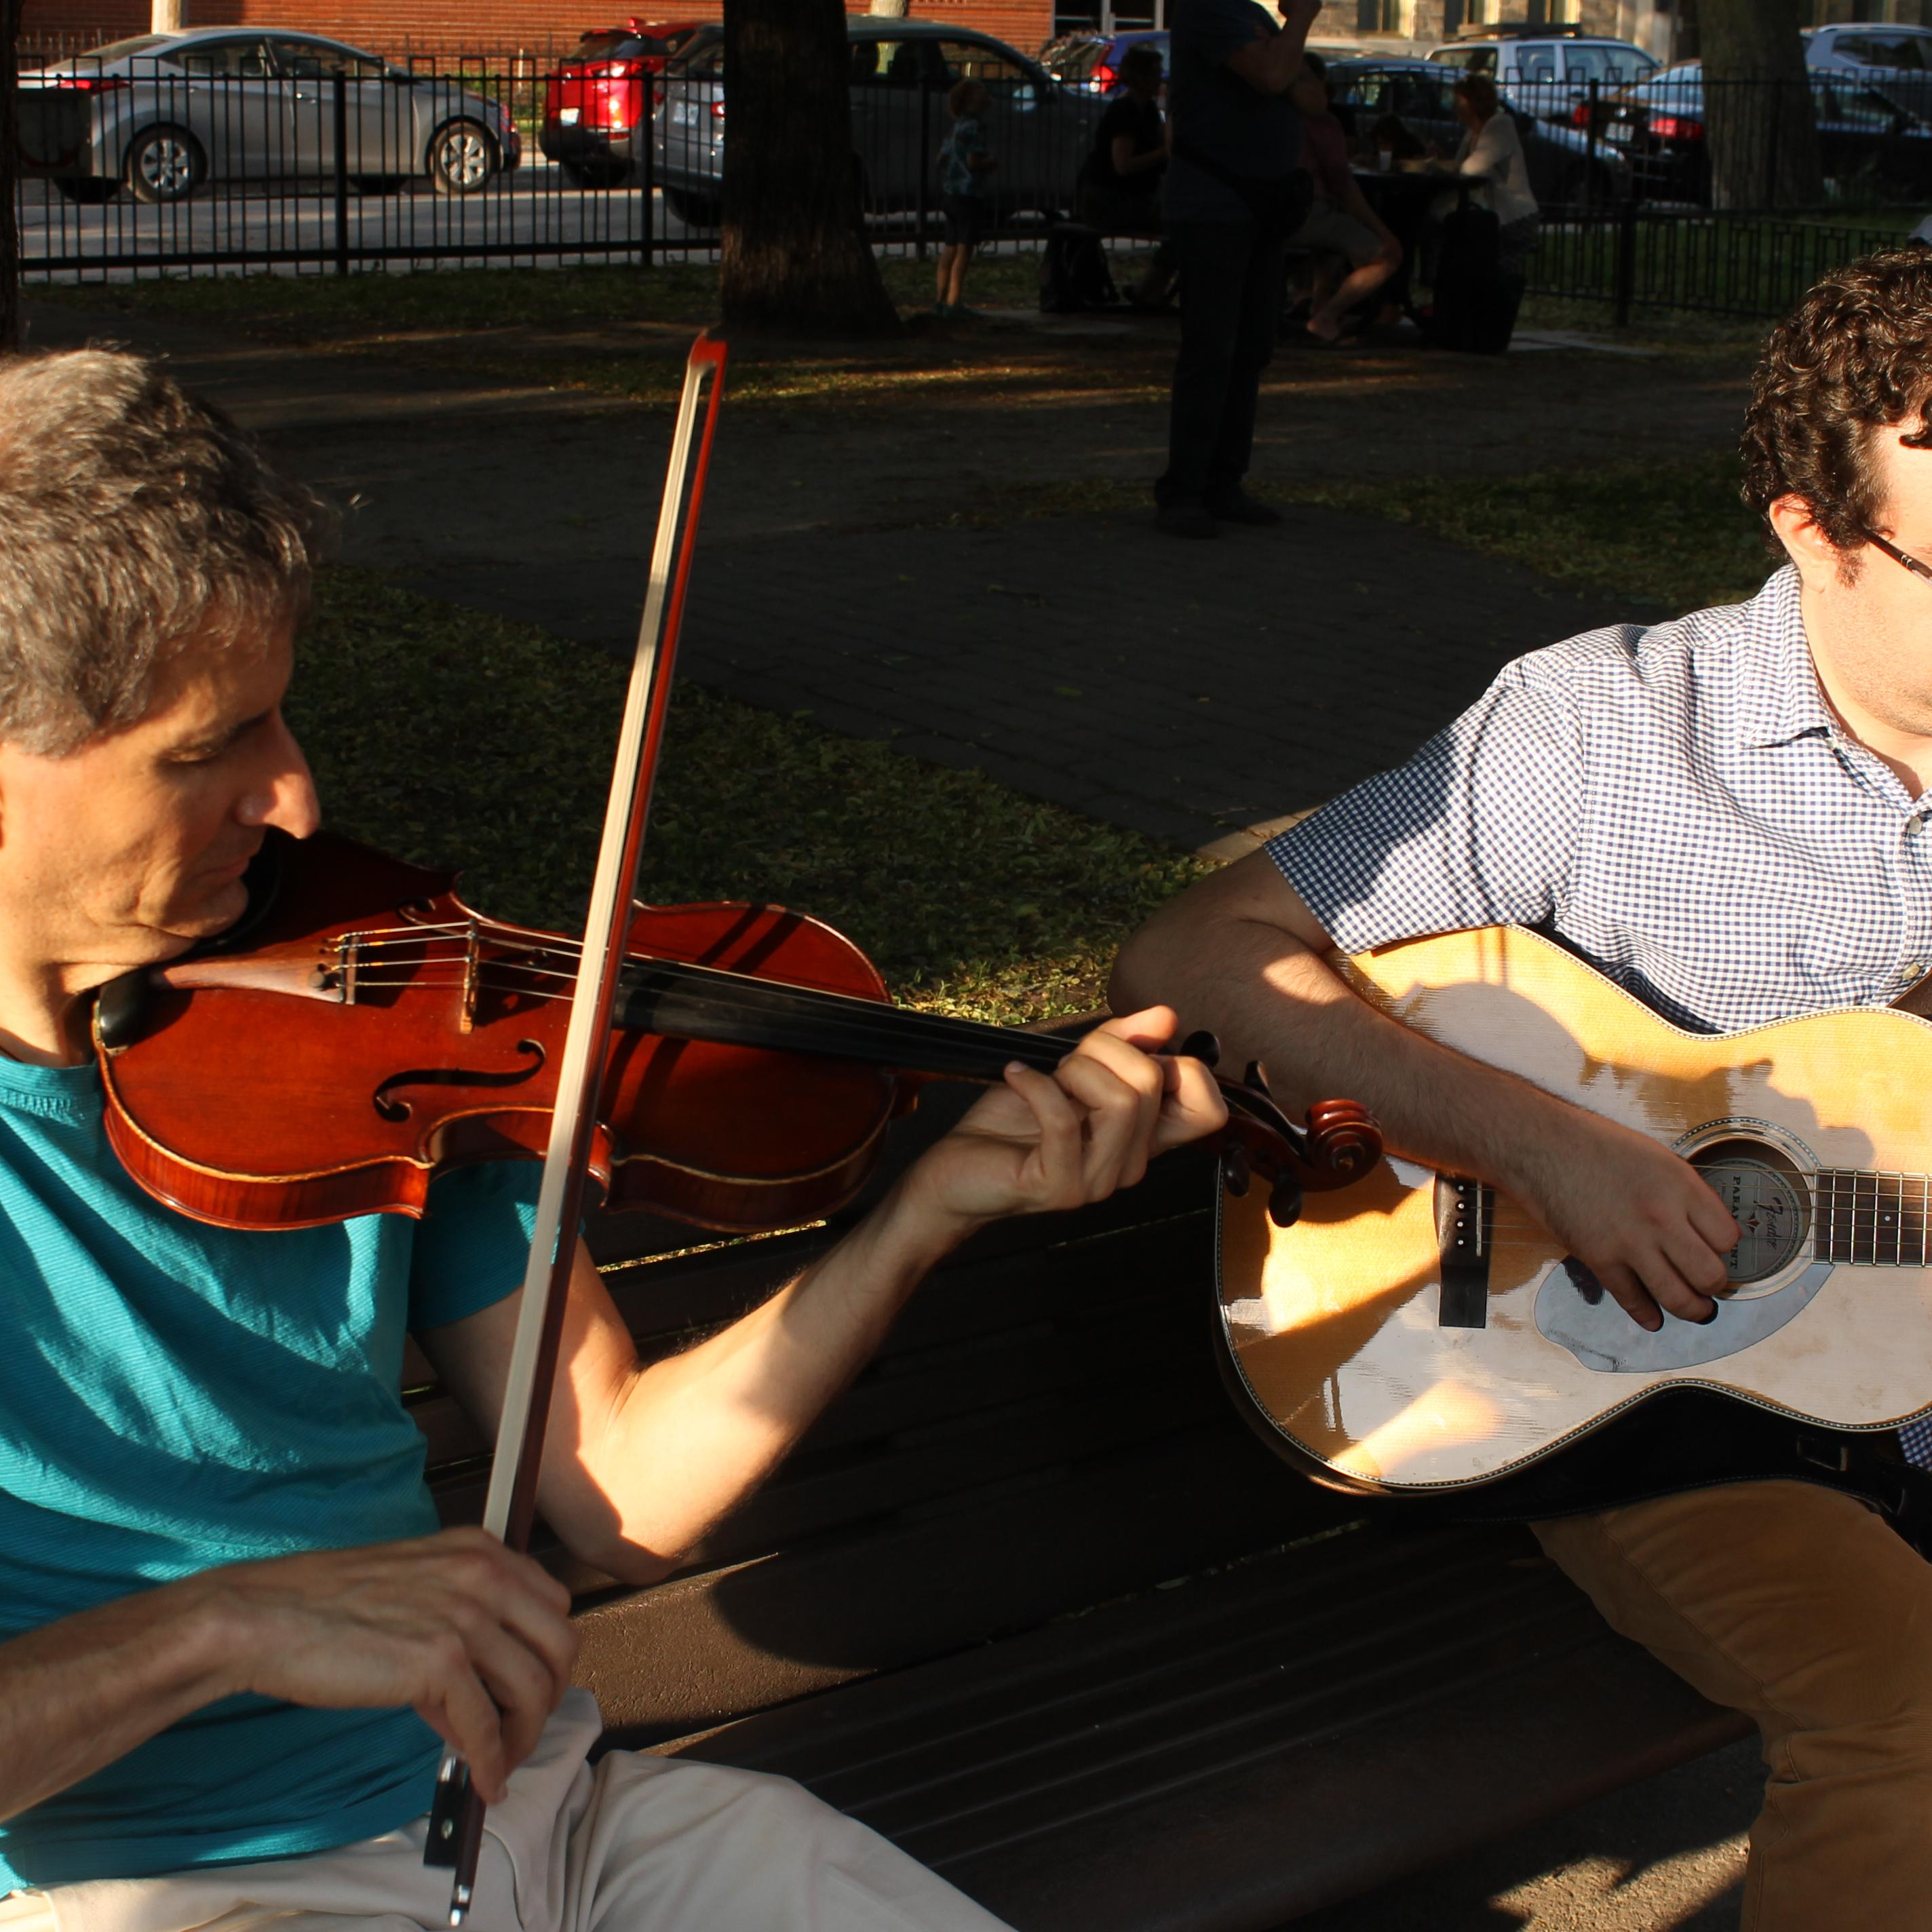 Two musicians playinf on a parc bench